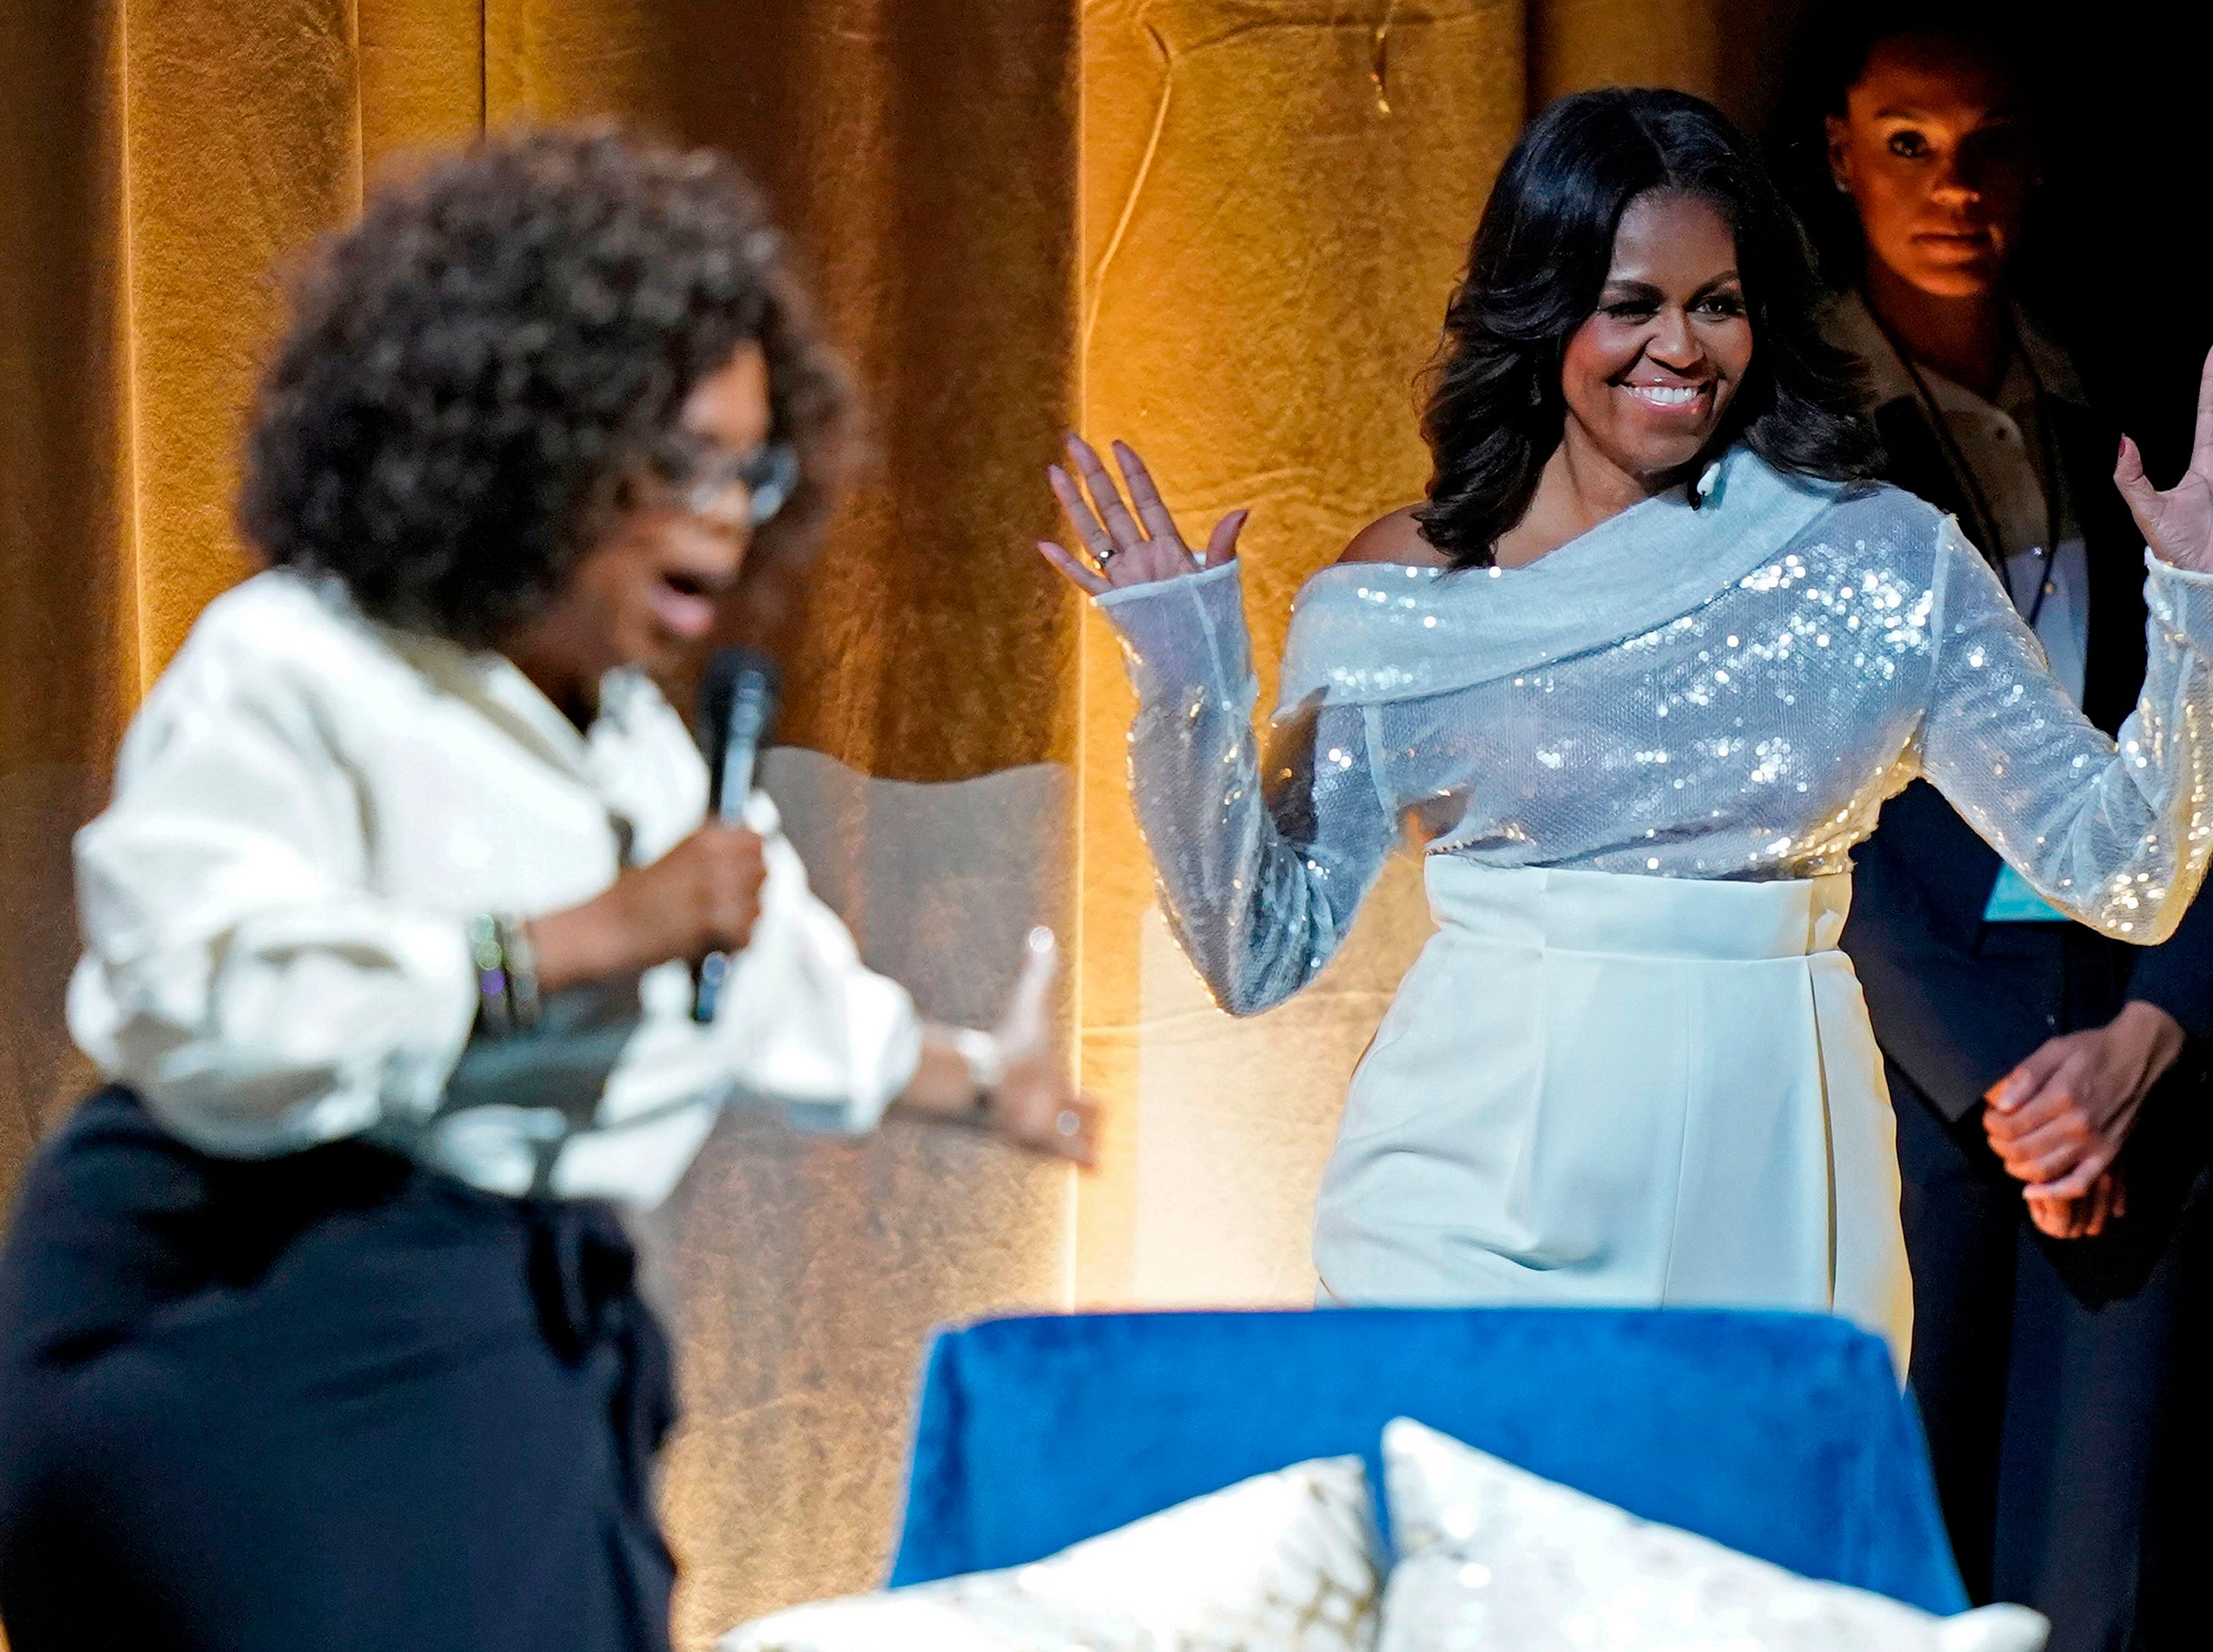 Former first lady Michelle Obama is introduced by Oprah Winfrey at the opening of her multi-city book tour at the United Center in Chicago, November 13, 2018.